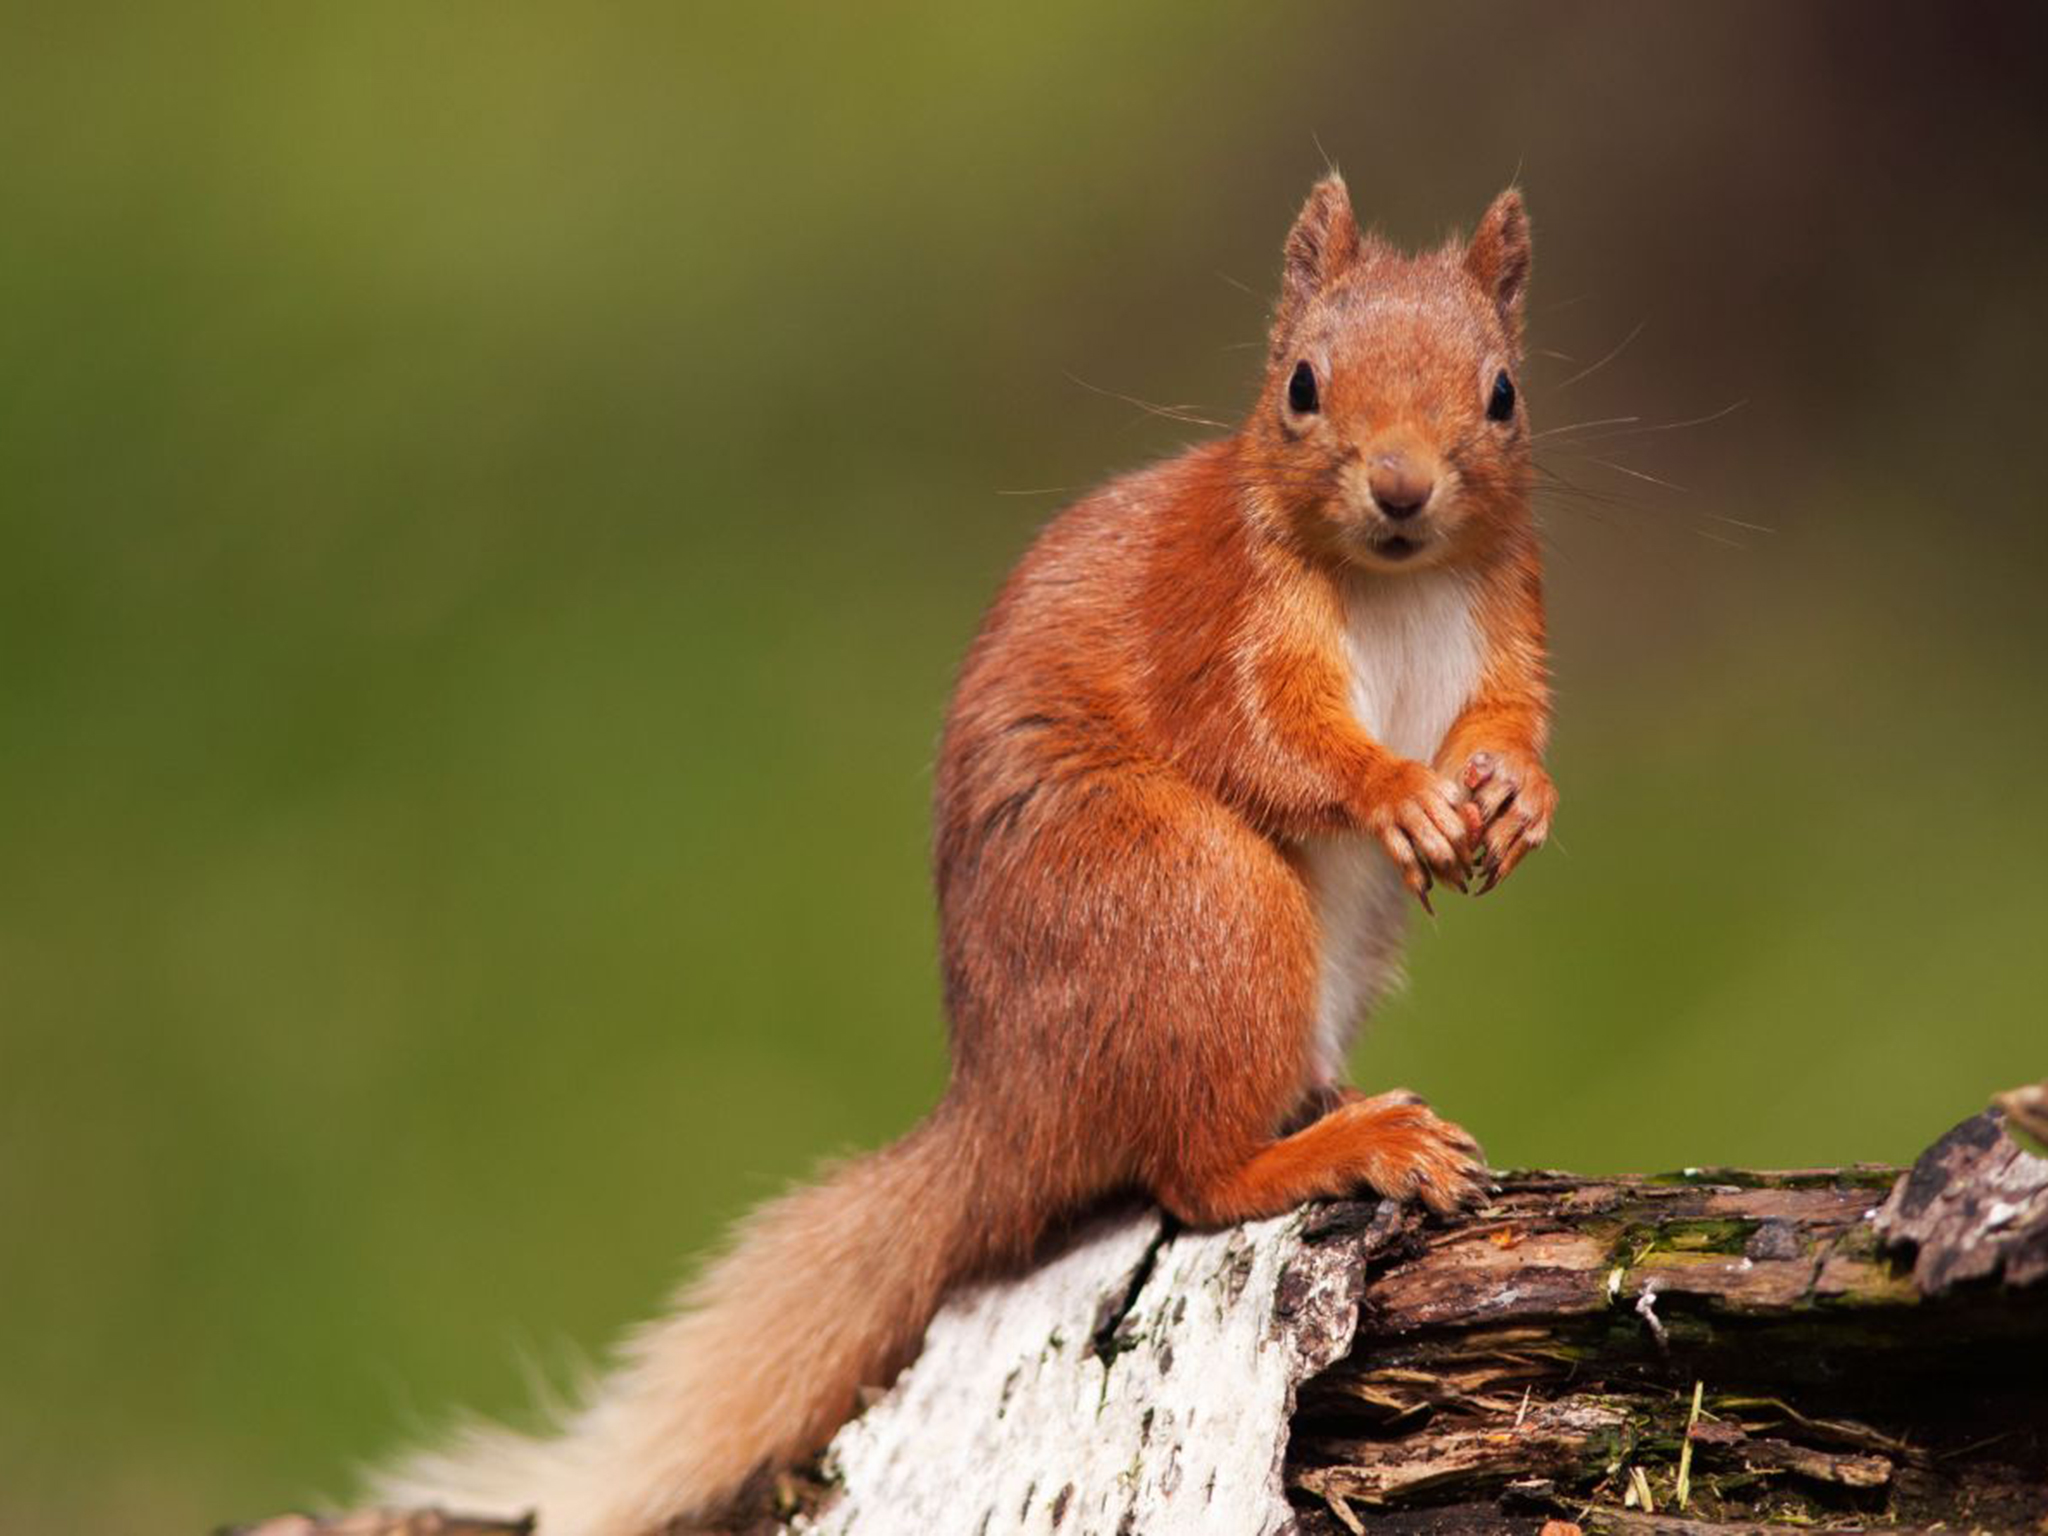 HQ Red Squirrel Wallpapers | File 828.02Kb